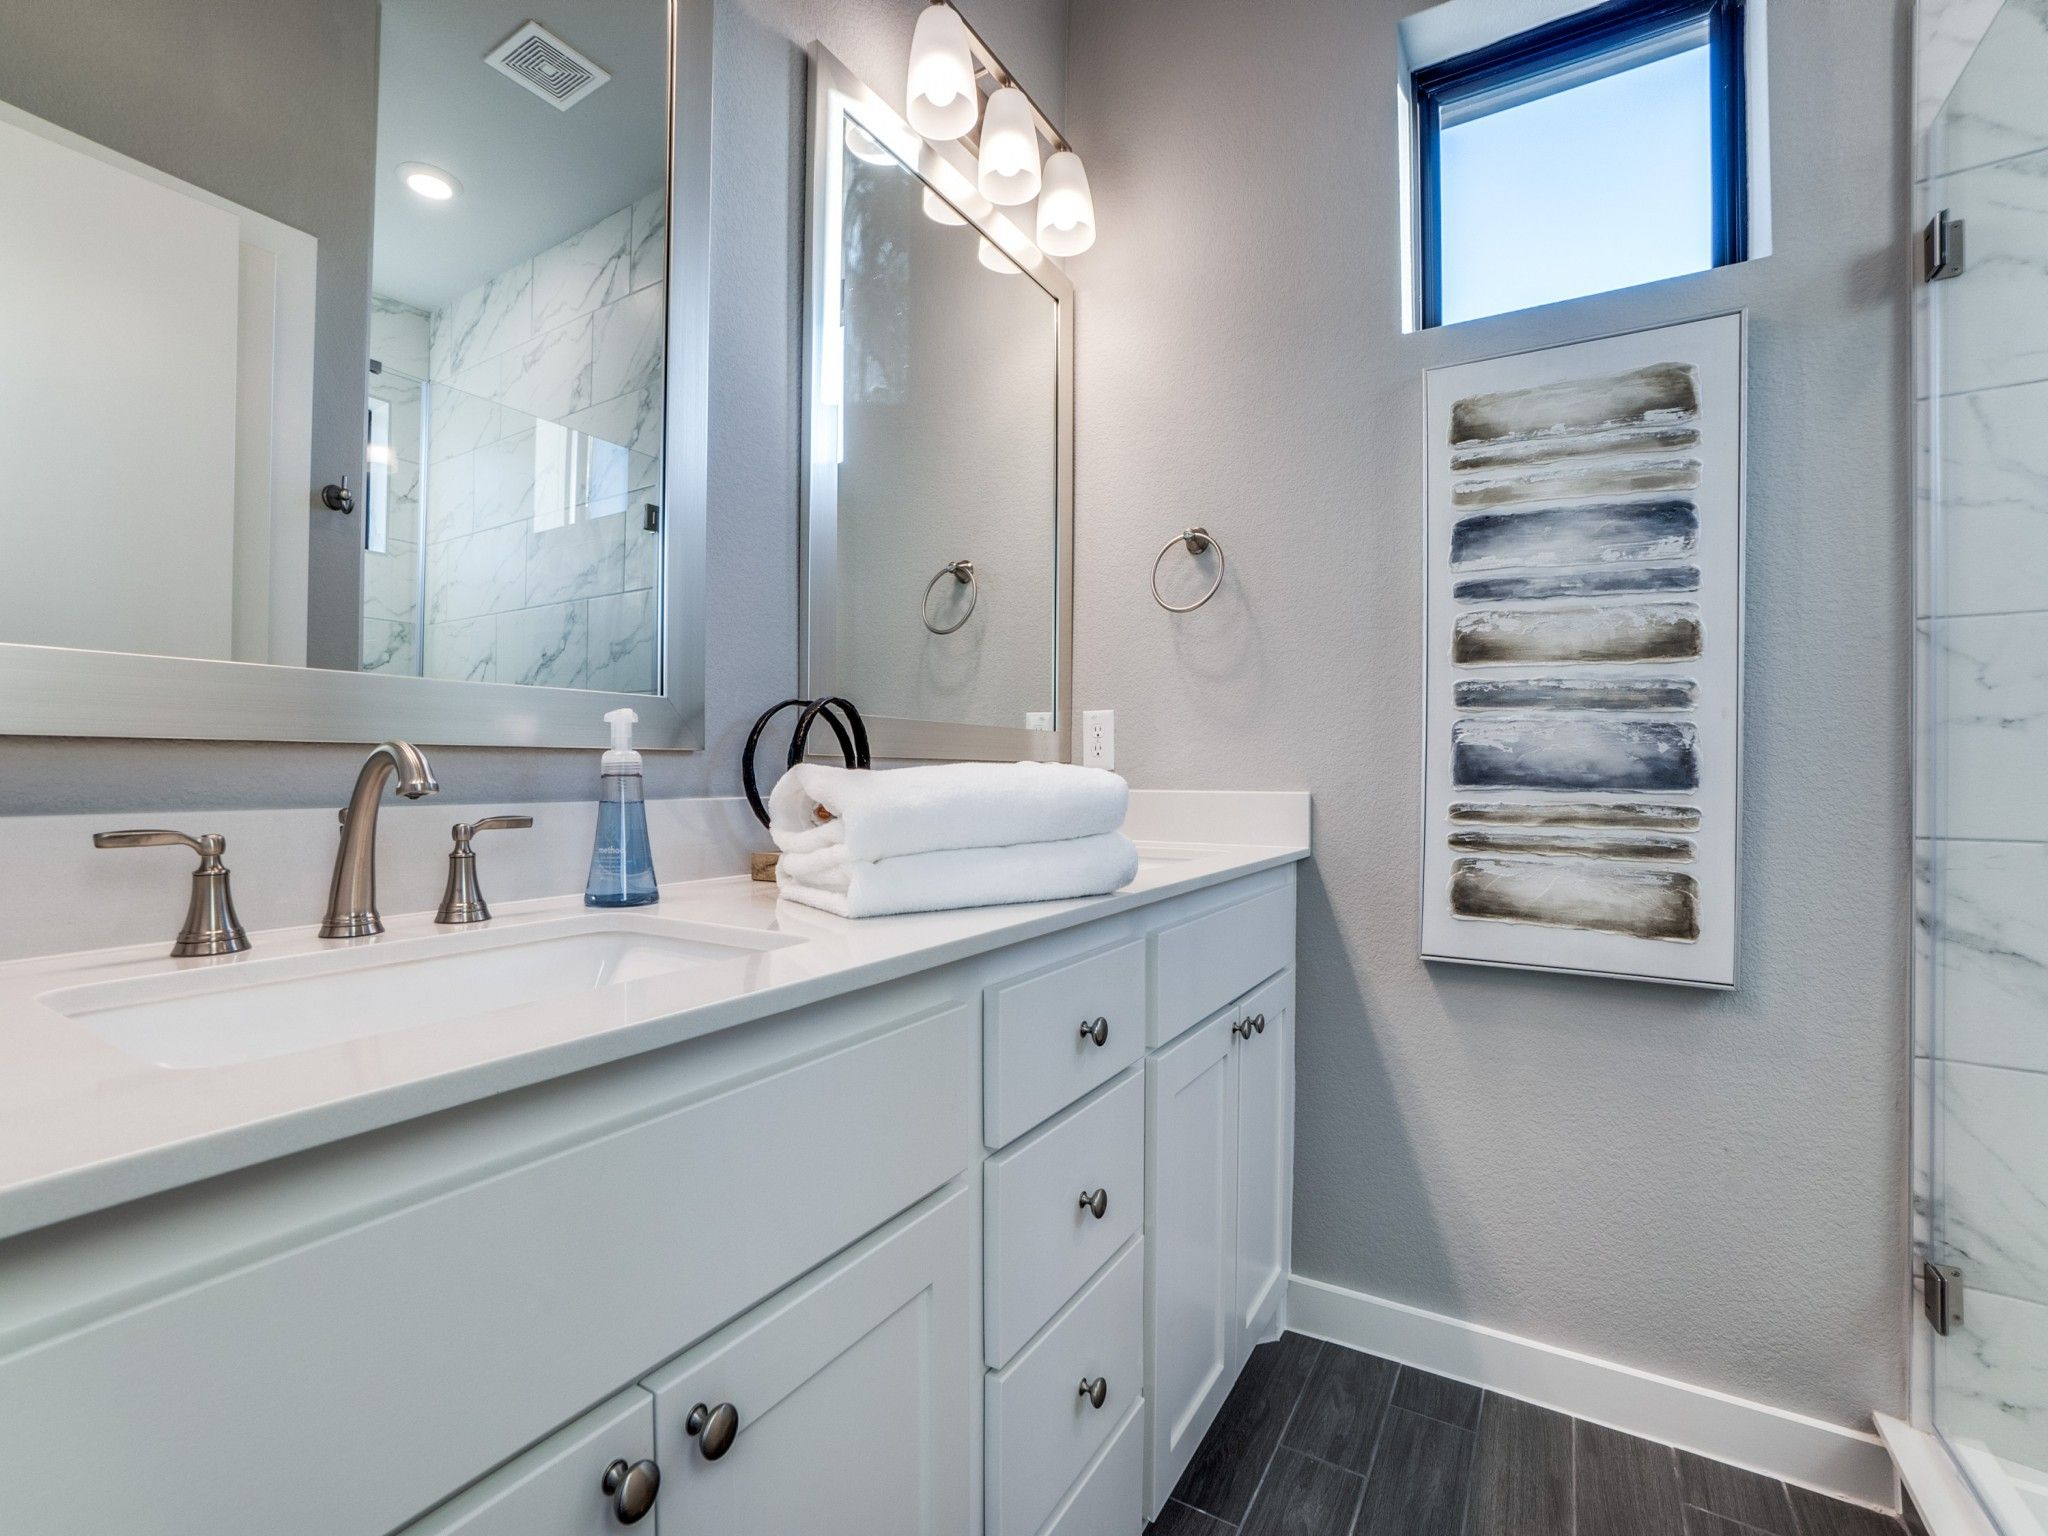 Bathroom featured in the Mulholland By Centre Living Homes in Dallas, TX